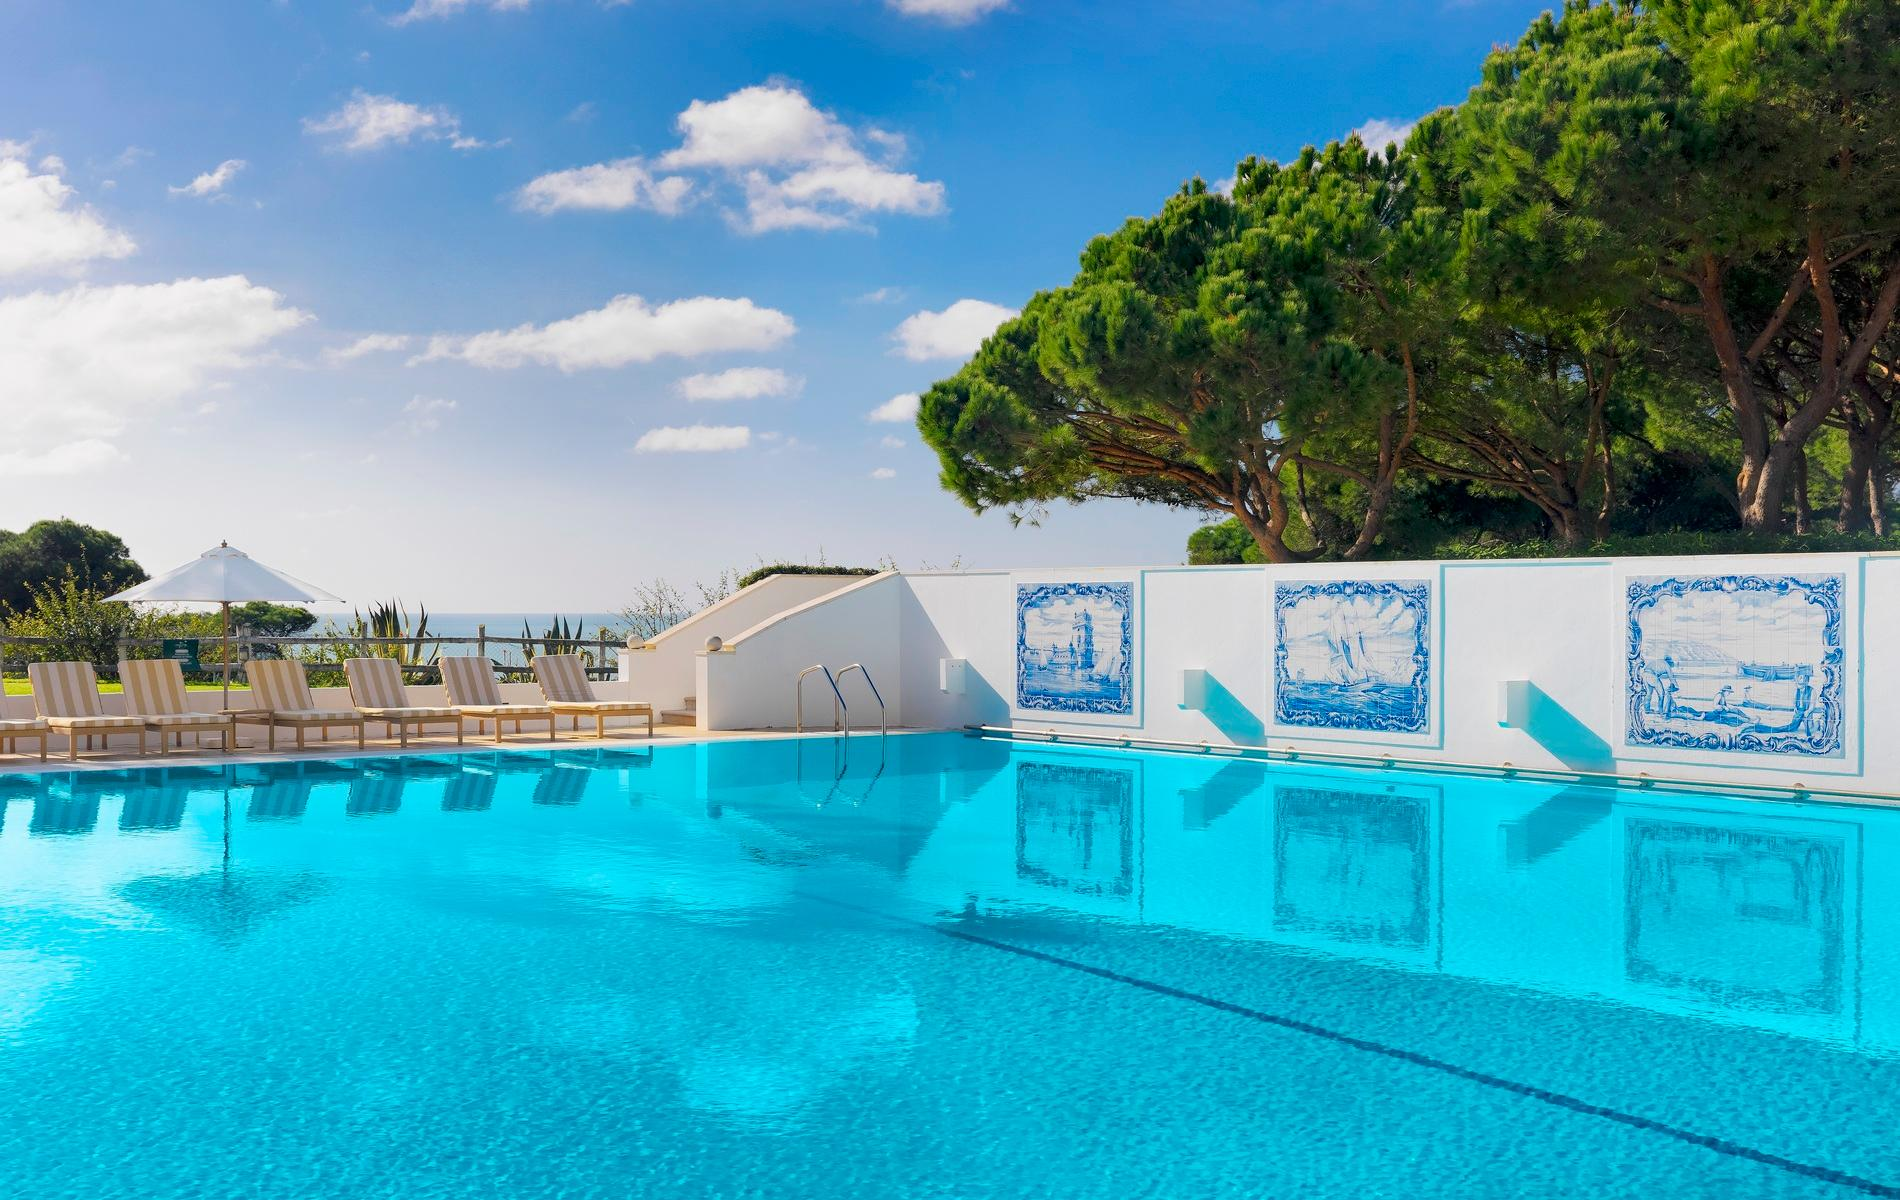 Pine Cliffs Hotel, a Luxury Collection Resort in Albufeira, Algarve, Portugal